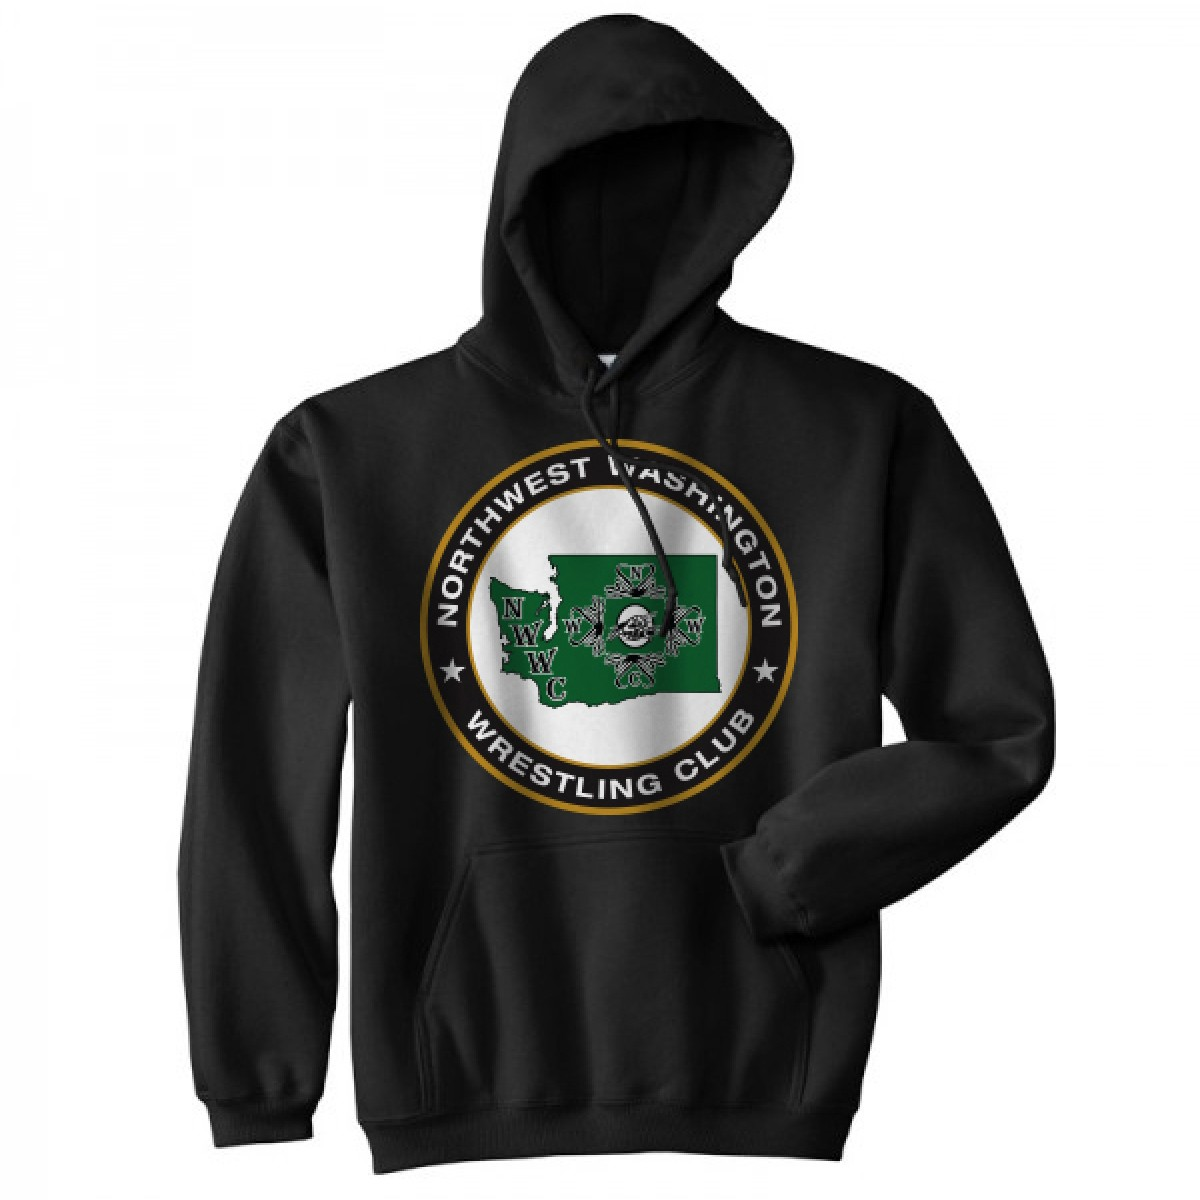 NWWC Black Hoodie With Green Logo-Black-2XL